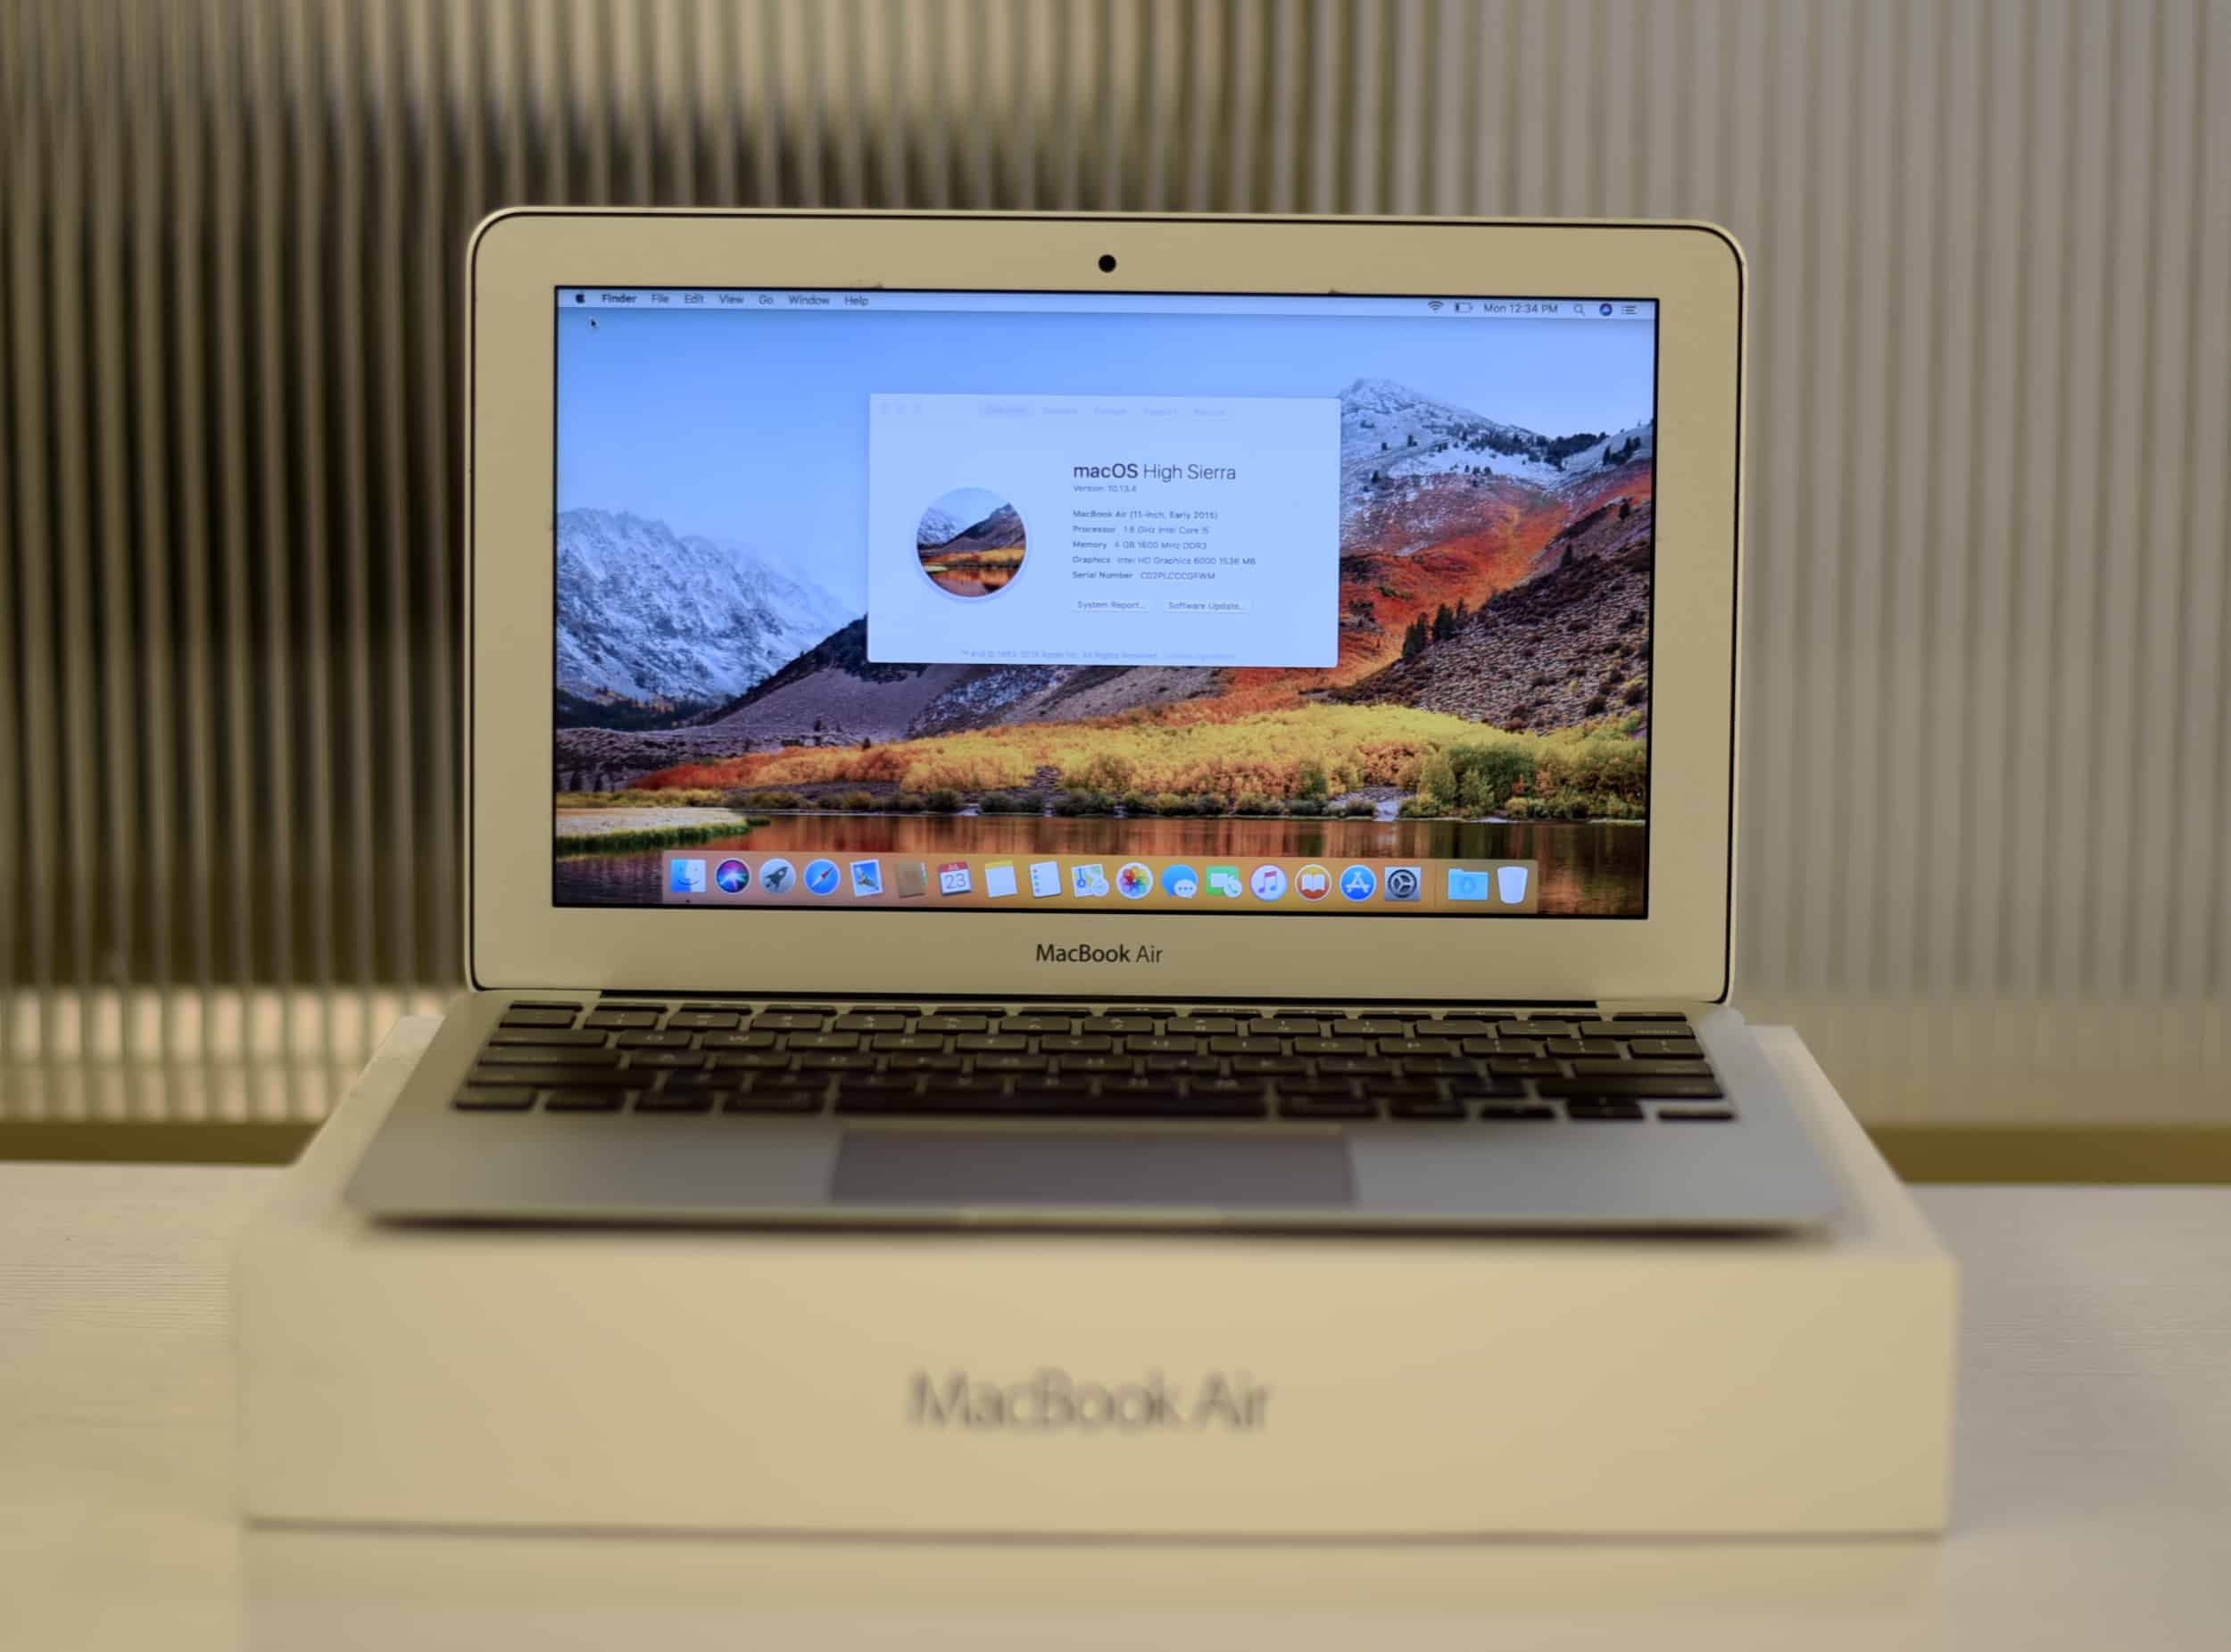 rerun MacBook Air